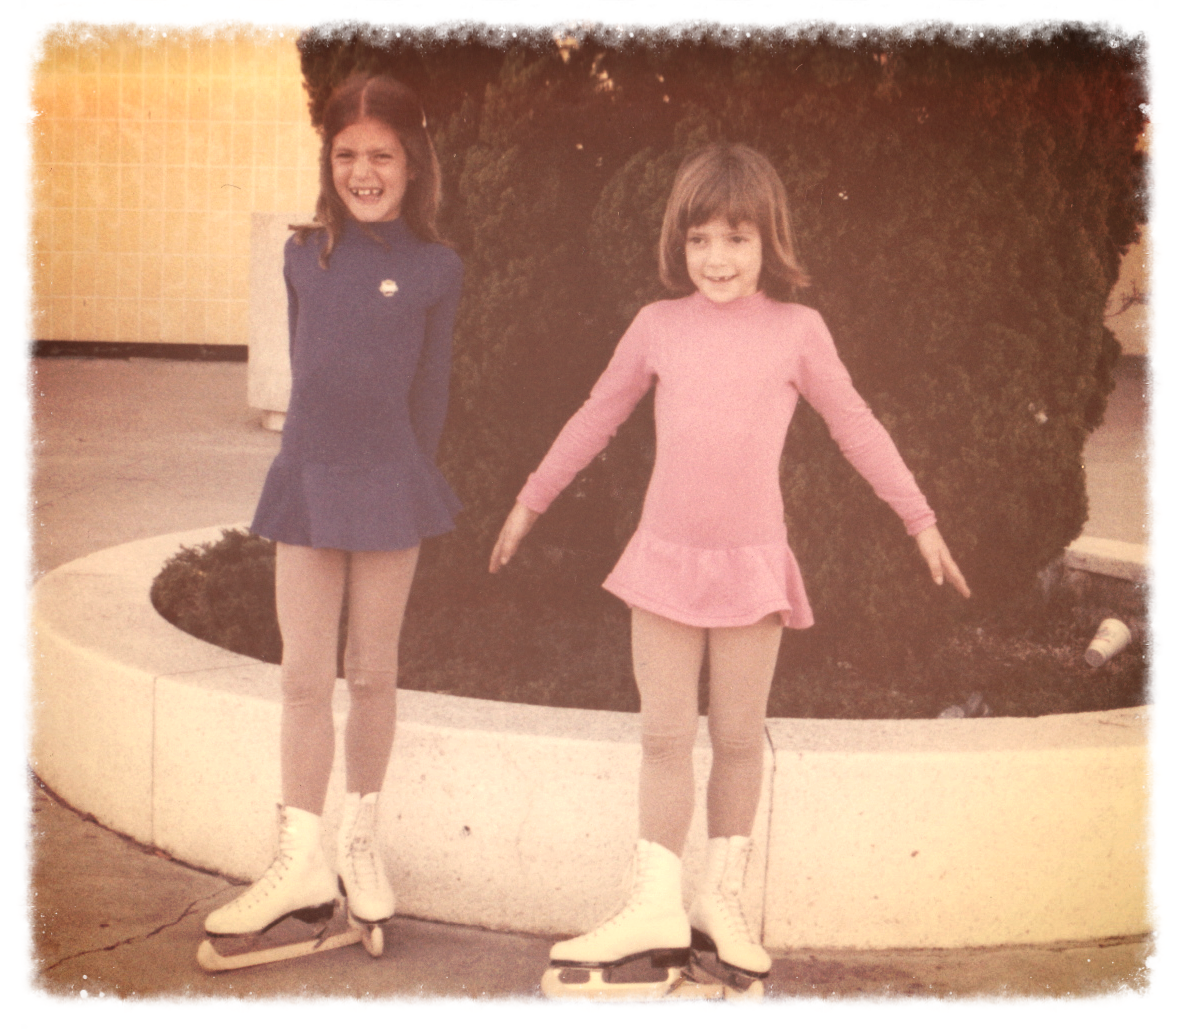 1979 - My sister and I outside the Topanga Mall Ice rink in Woodland Hills, CA